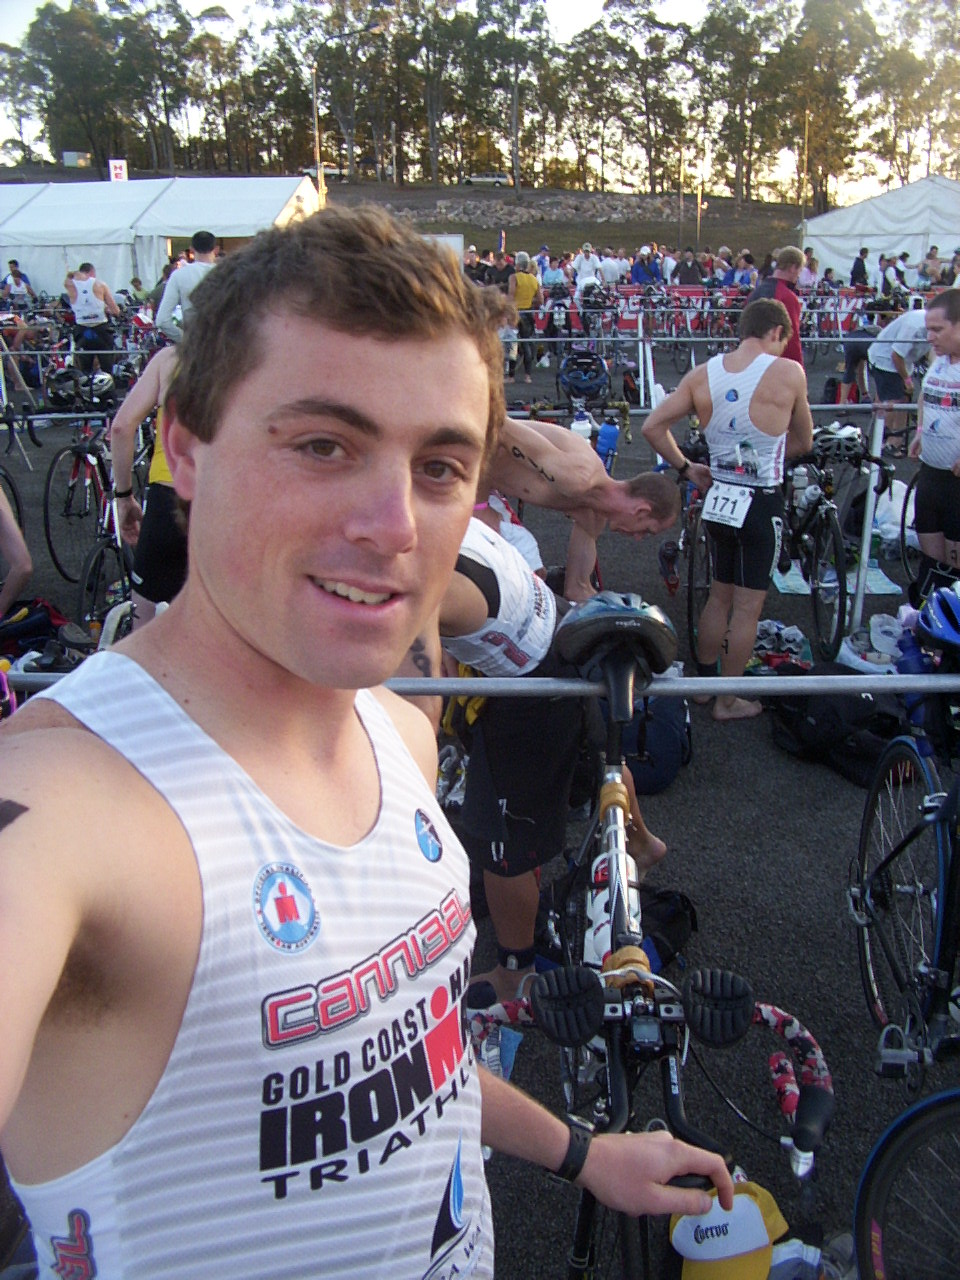 Triathlon - damien